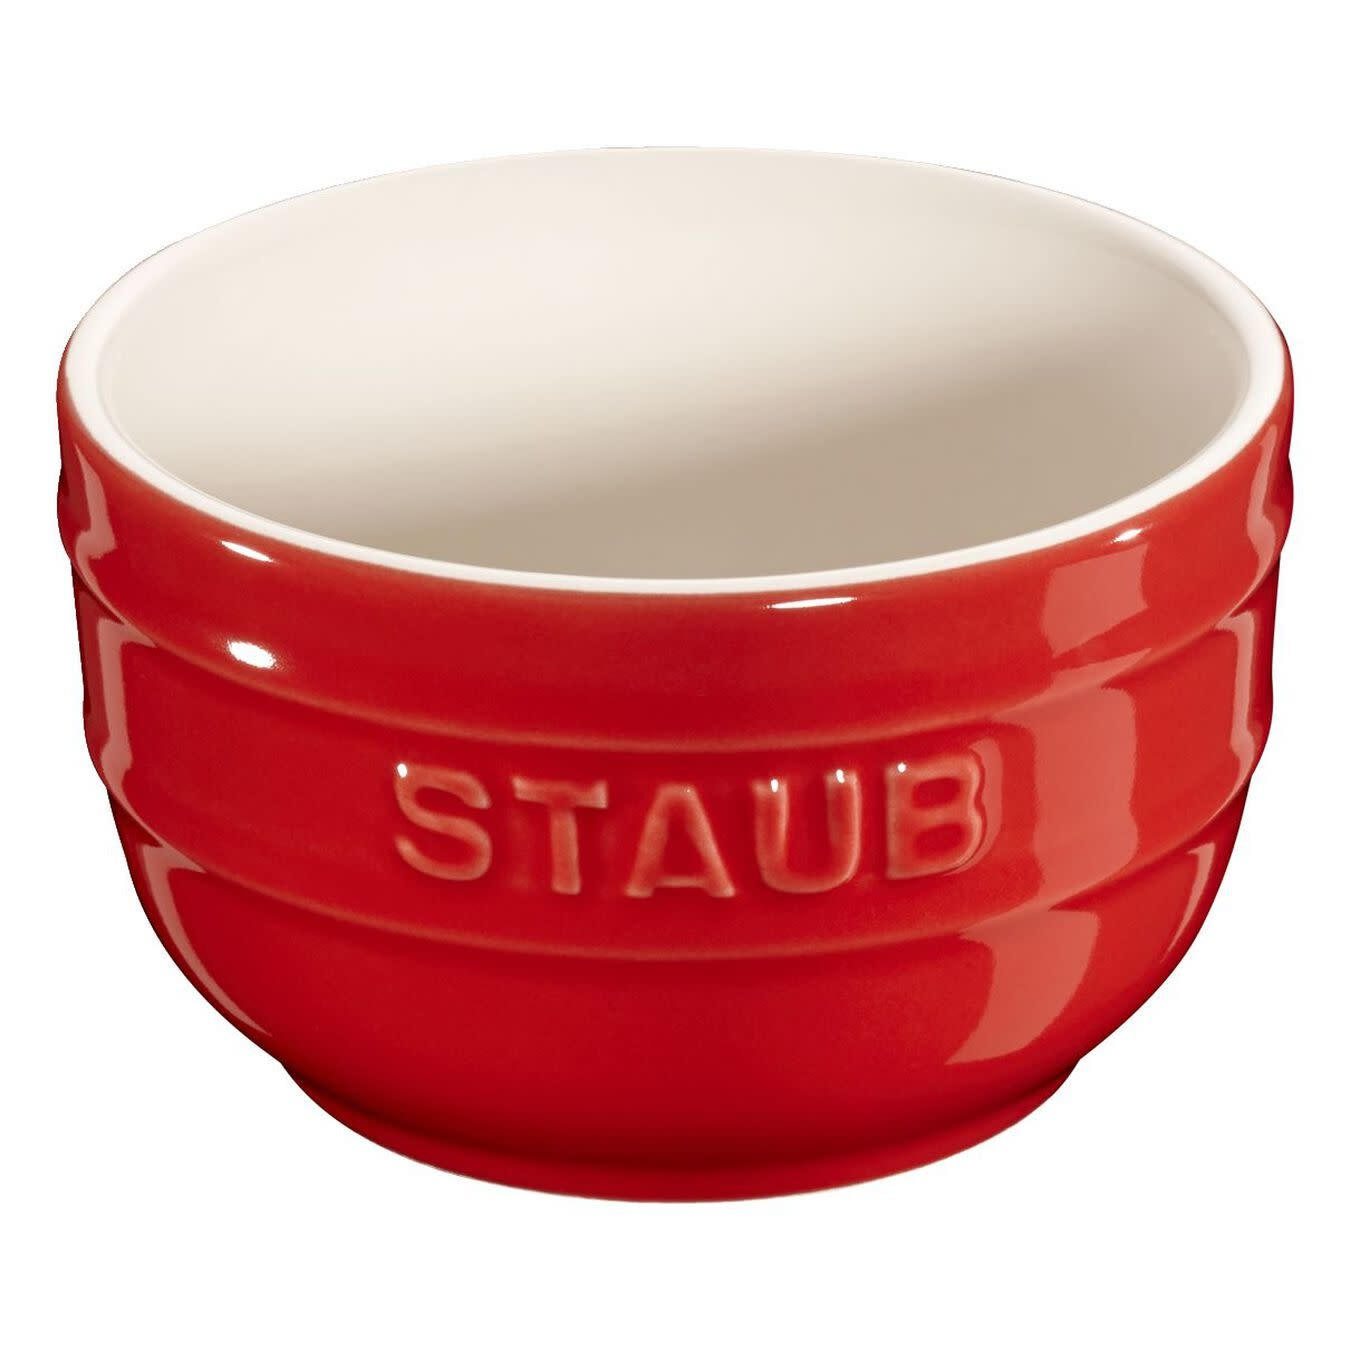 Staub Ramekin Set 2pc 235ml / 0.25qt Cherry